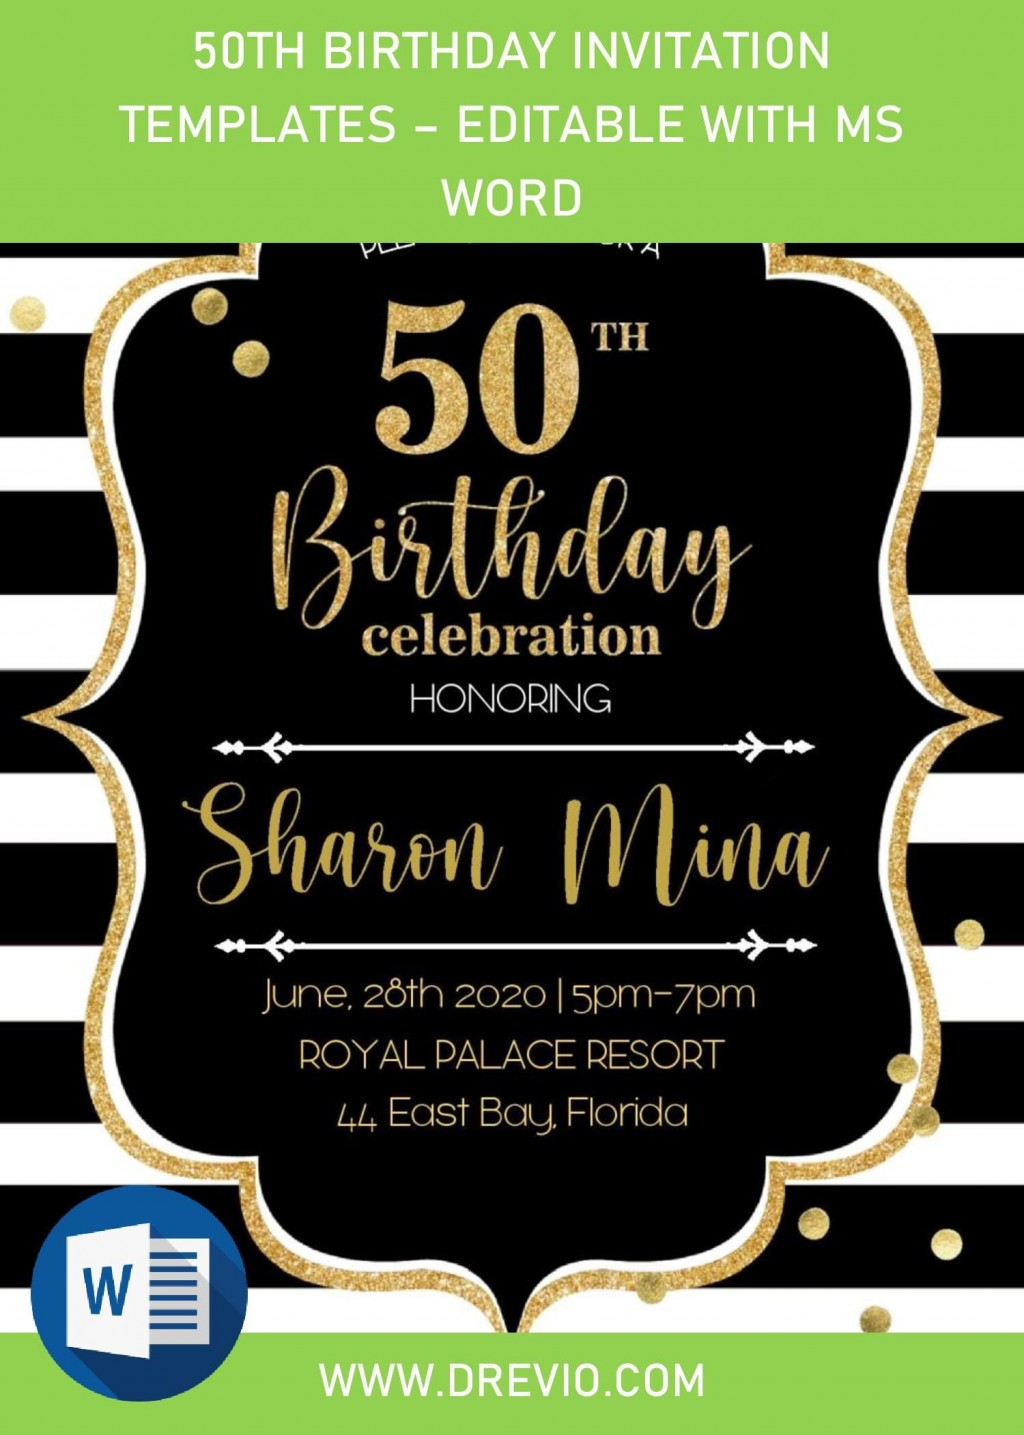 003 Exceptional Birthday Invite Template Word Free Picture  Party InvitationLarge